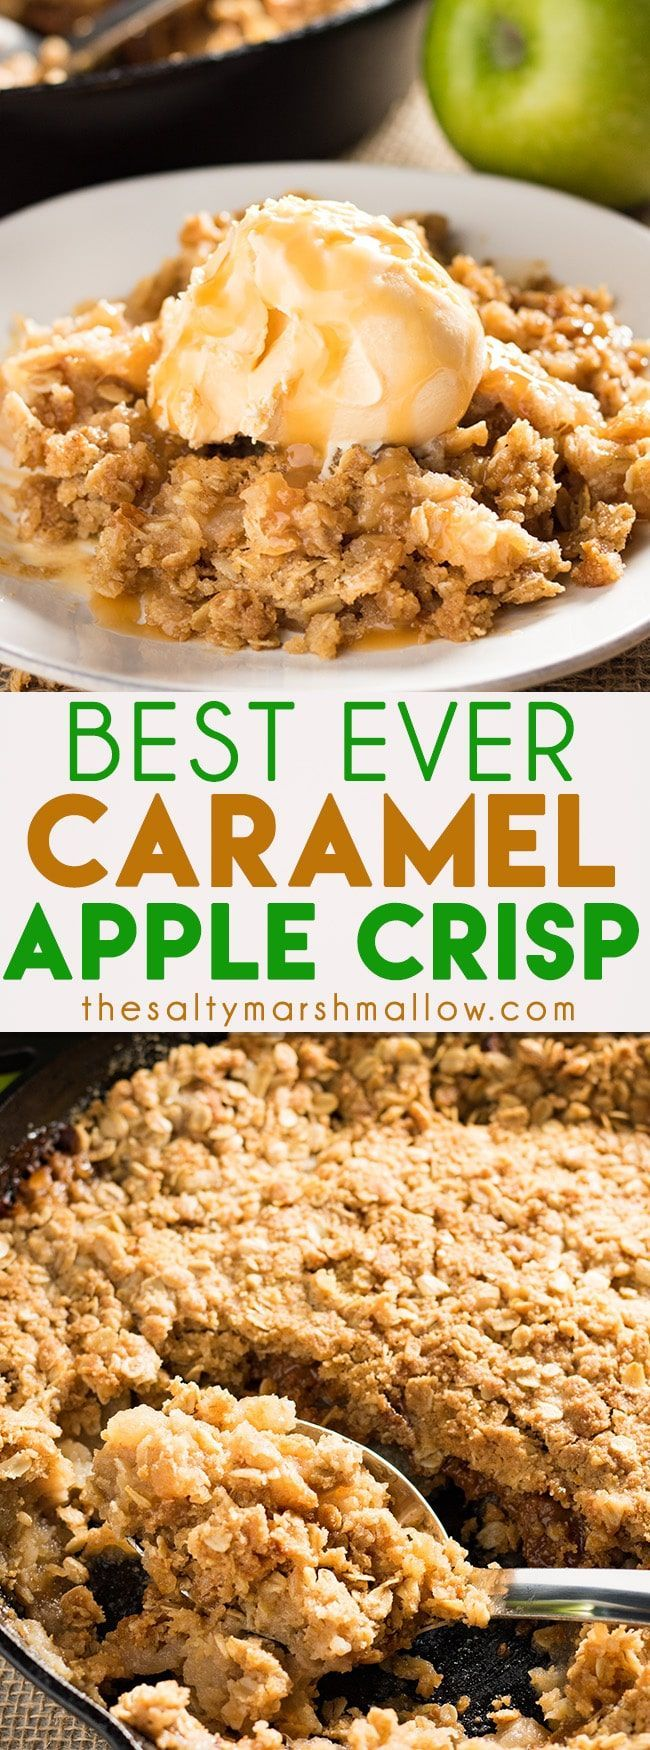 Caramel Apple Crisp - The best ever apple crisp! This easy apple crisp recipe calls for granny smith apples, apple cider, and gooey caramels! Topped with an amazing cinnamon crumble, this will be your new favorite fall dessert!